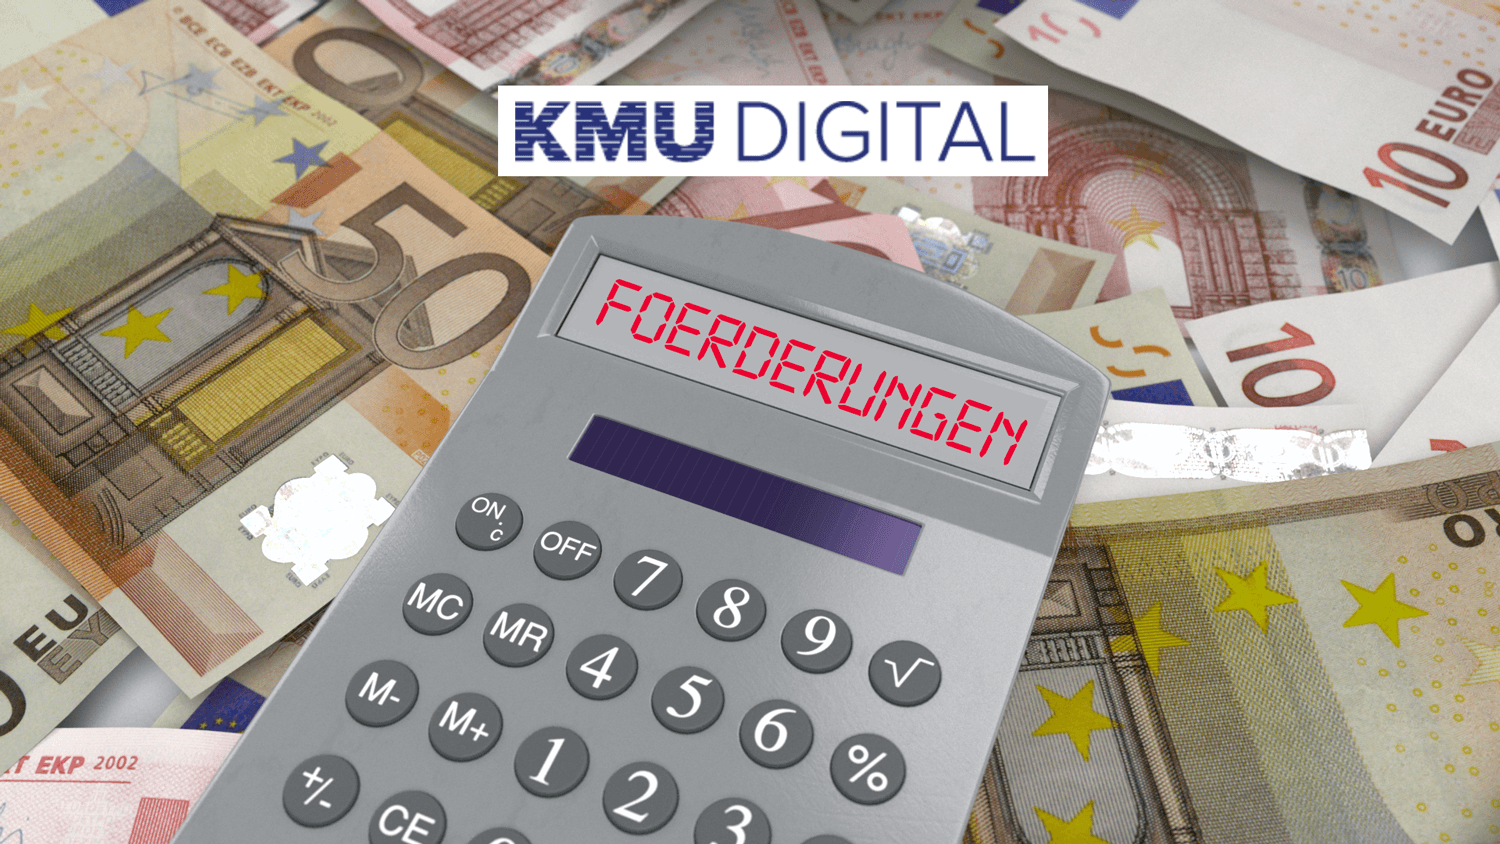 KMU-DIGITAL-Foederung